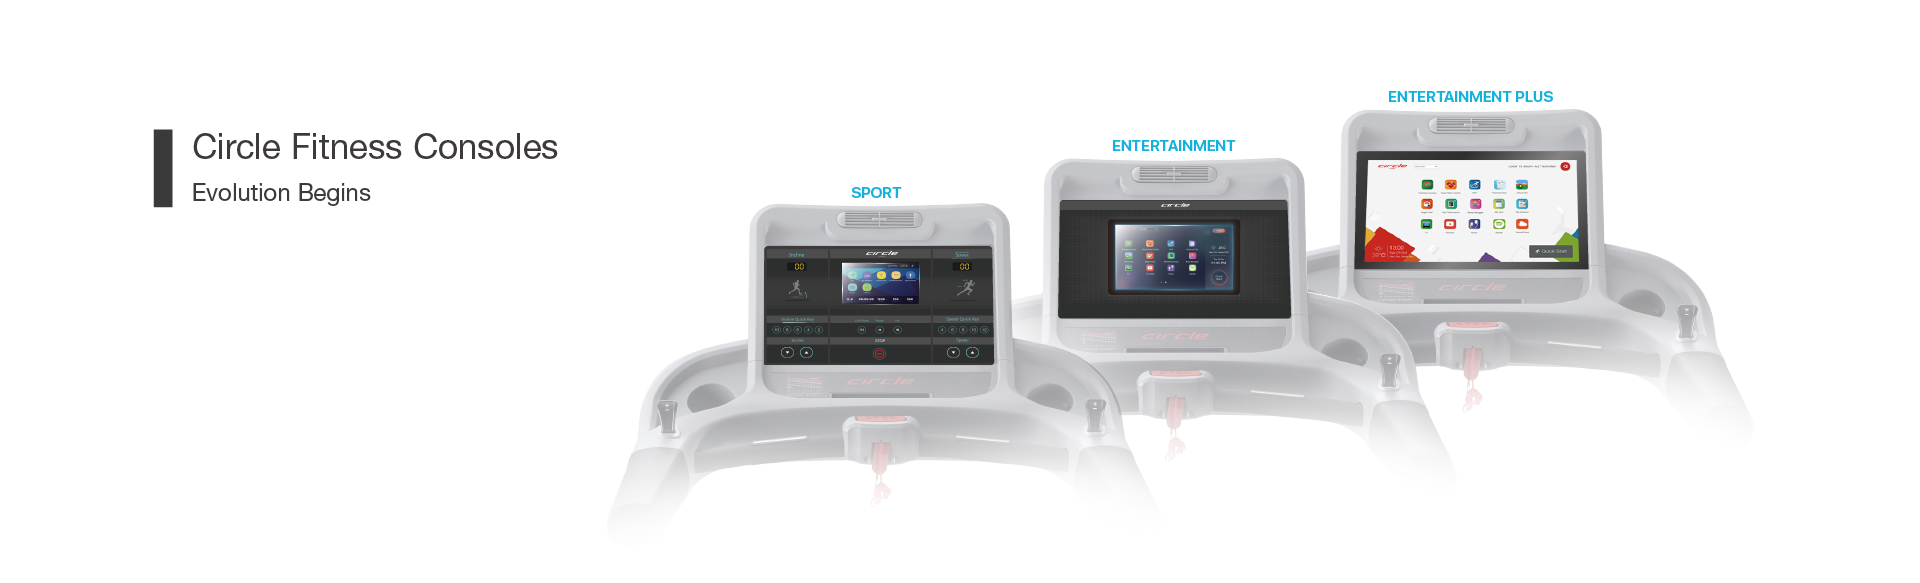 Circle Fitness Consoles